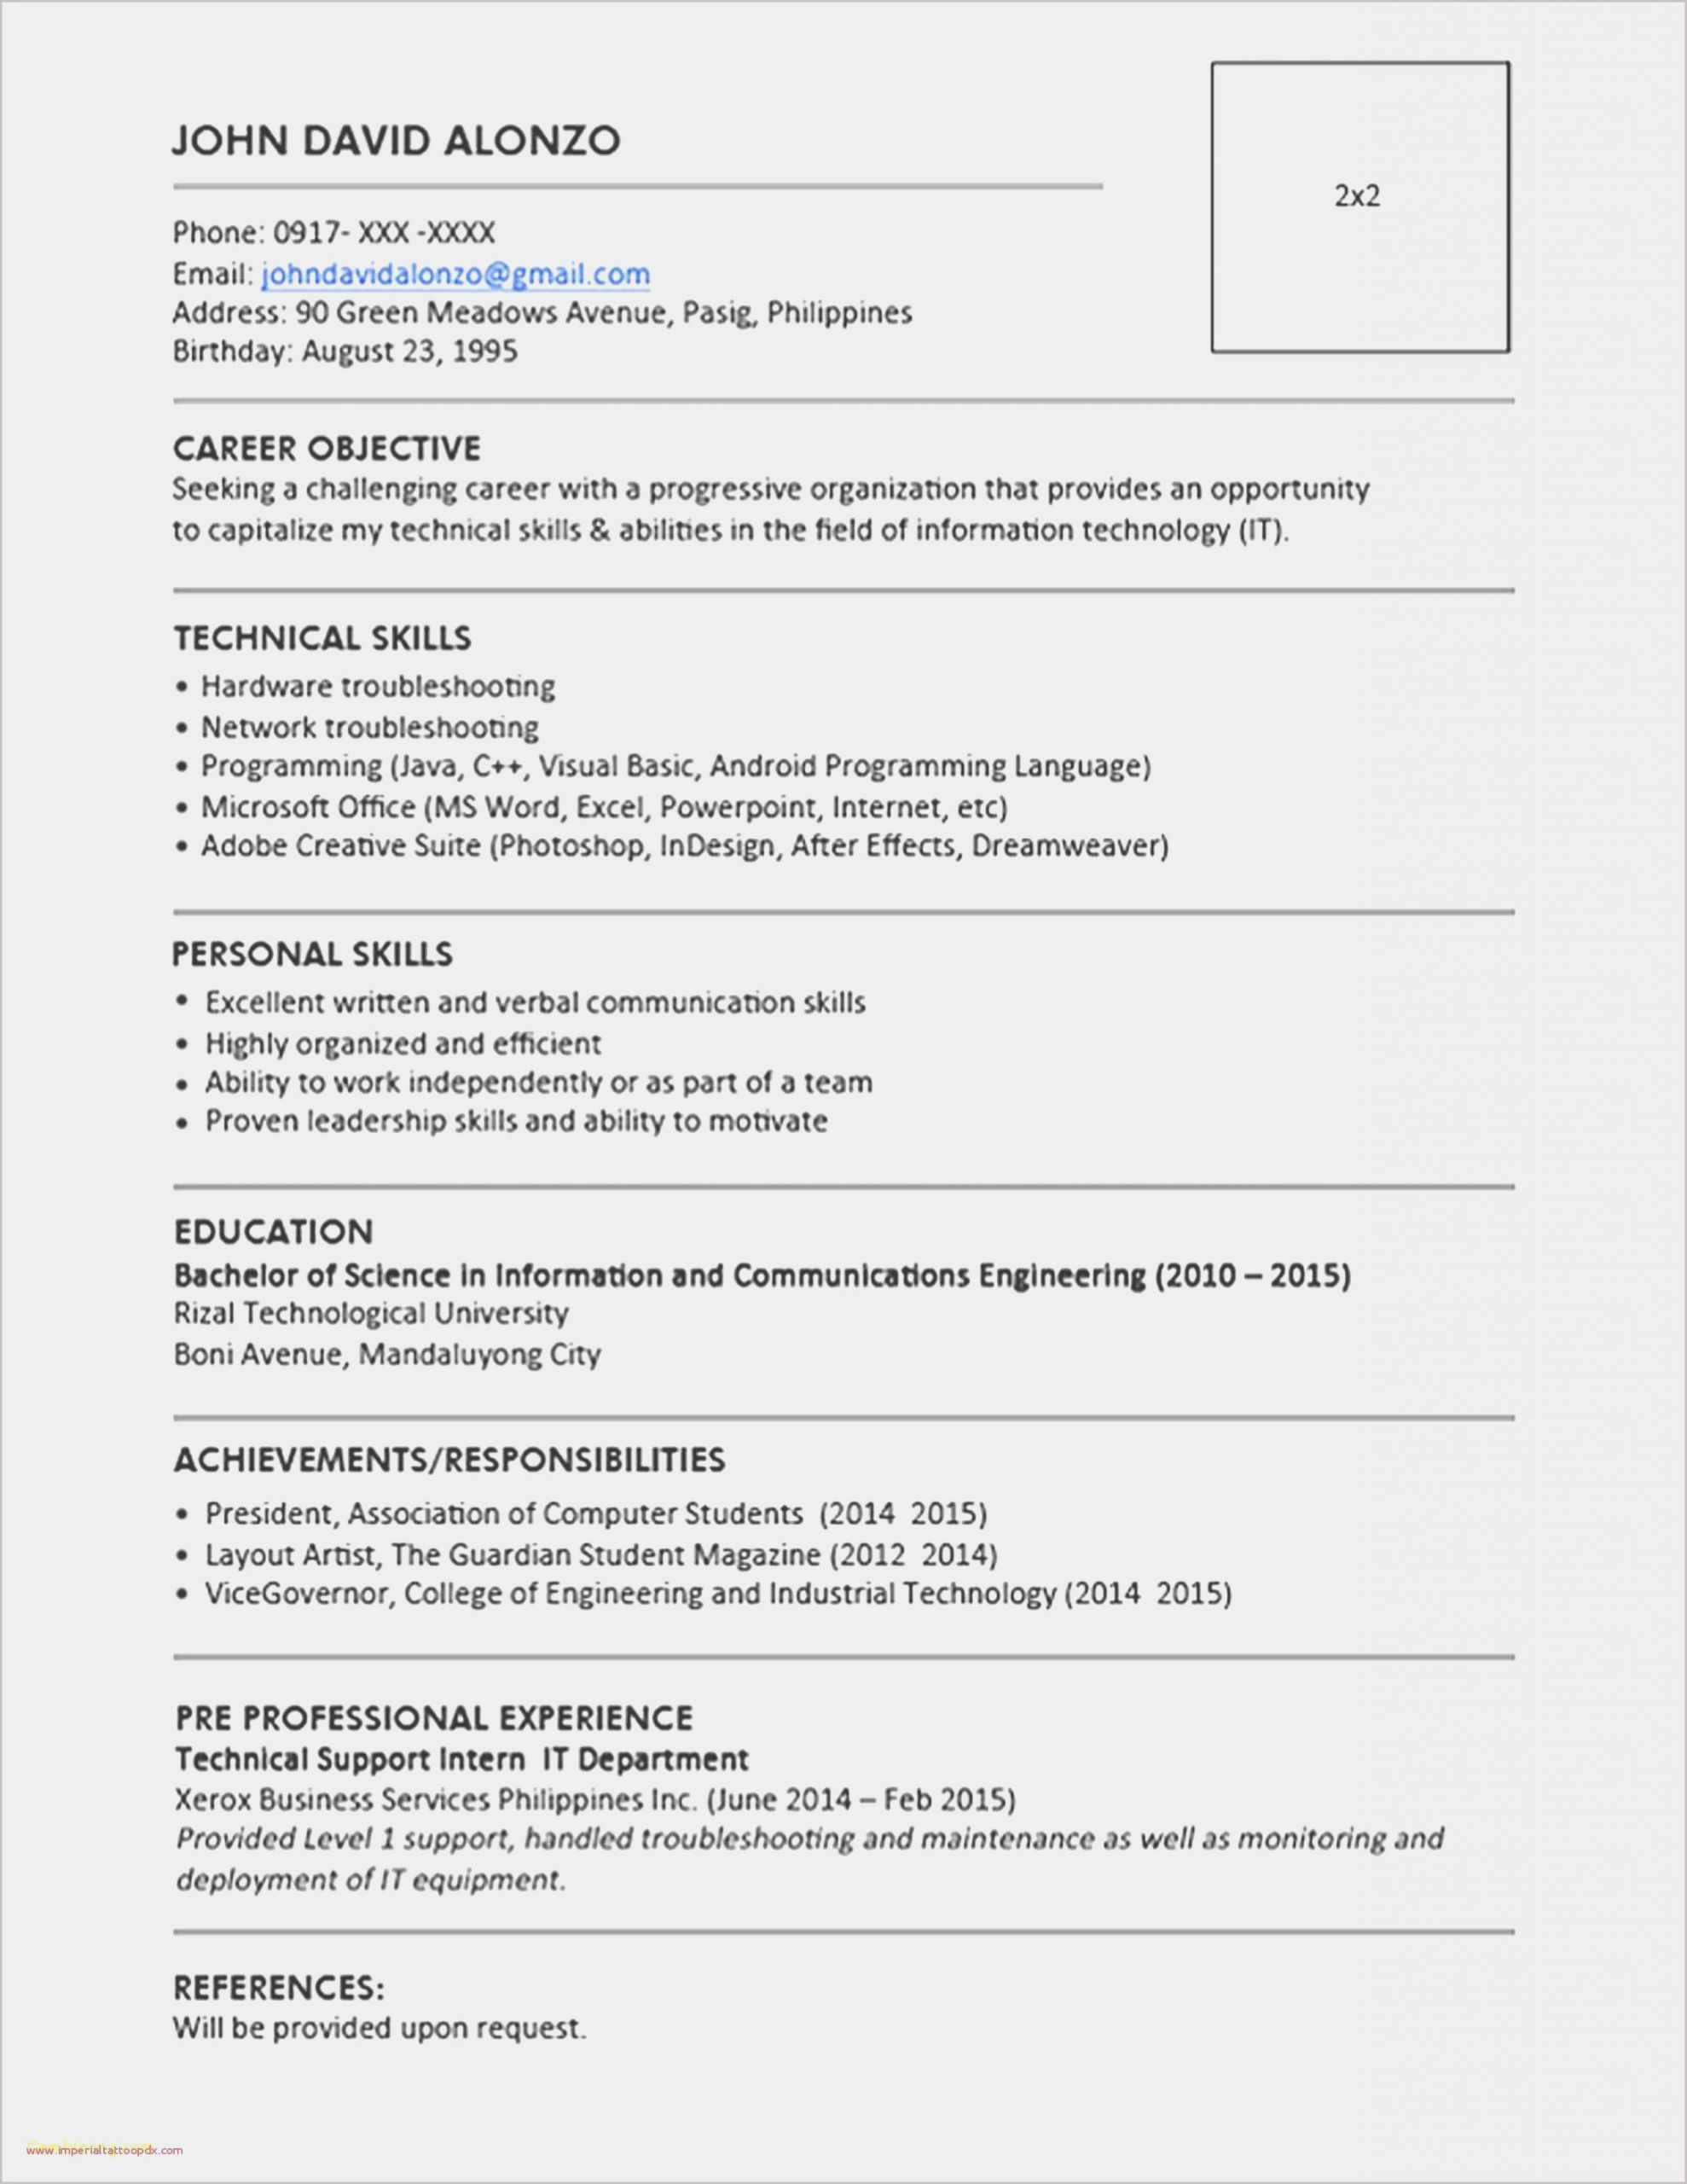 Simple Resume Templates Word Free Download